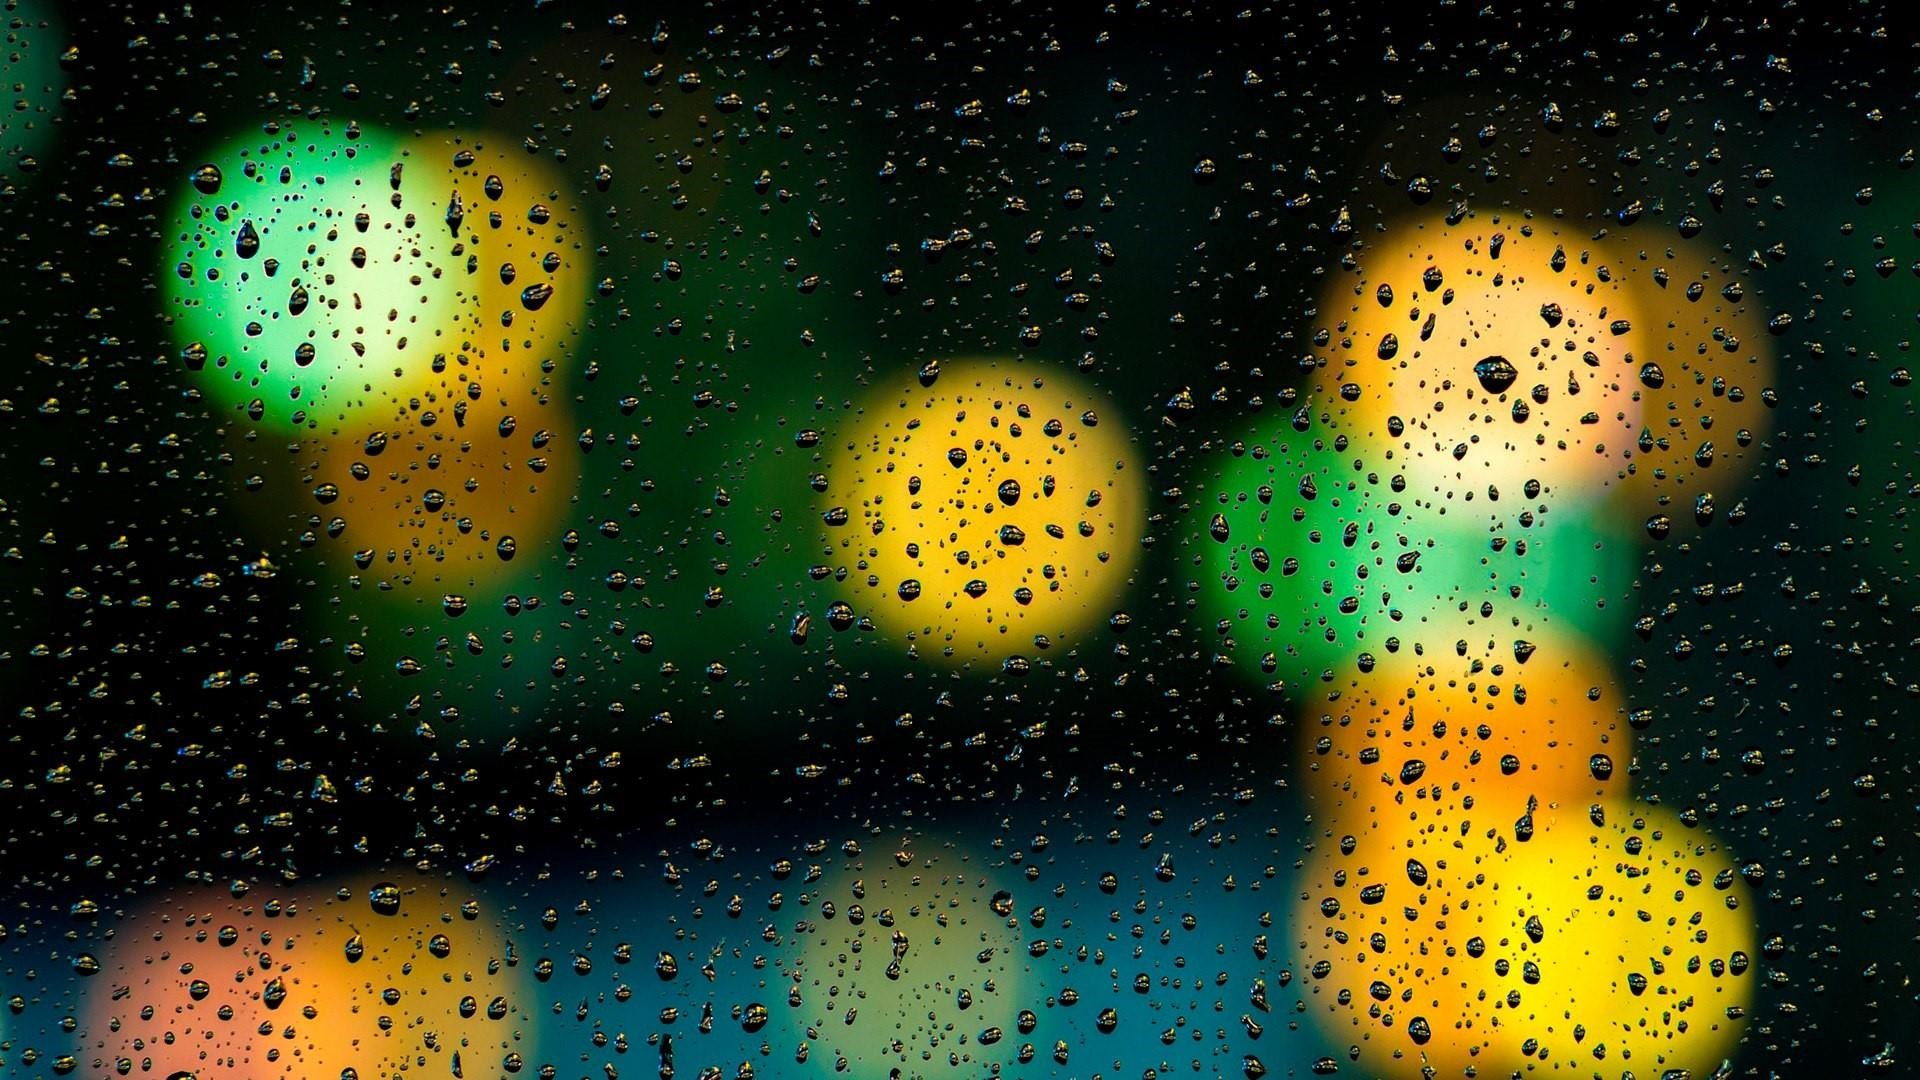 1920x1080 Raindrops on the window with bokeh lights wallpaper